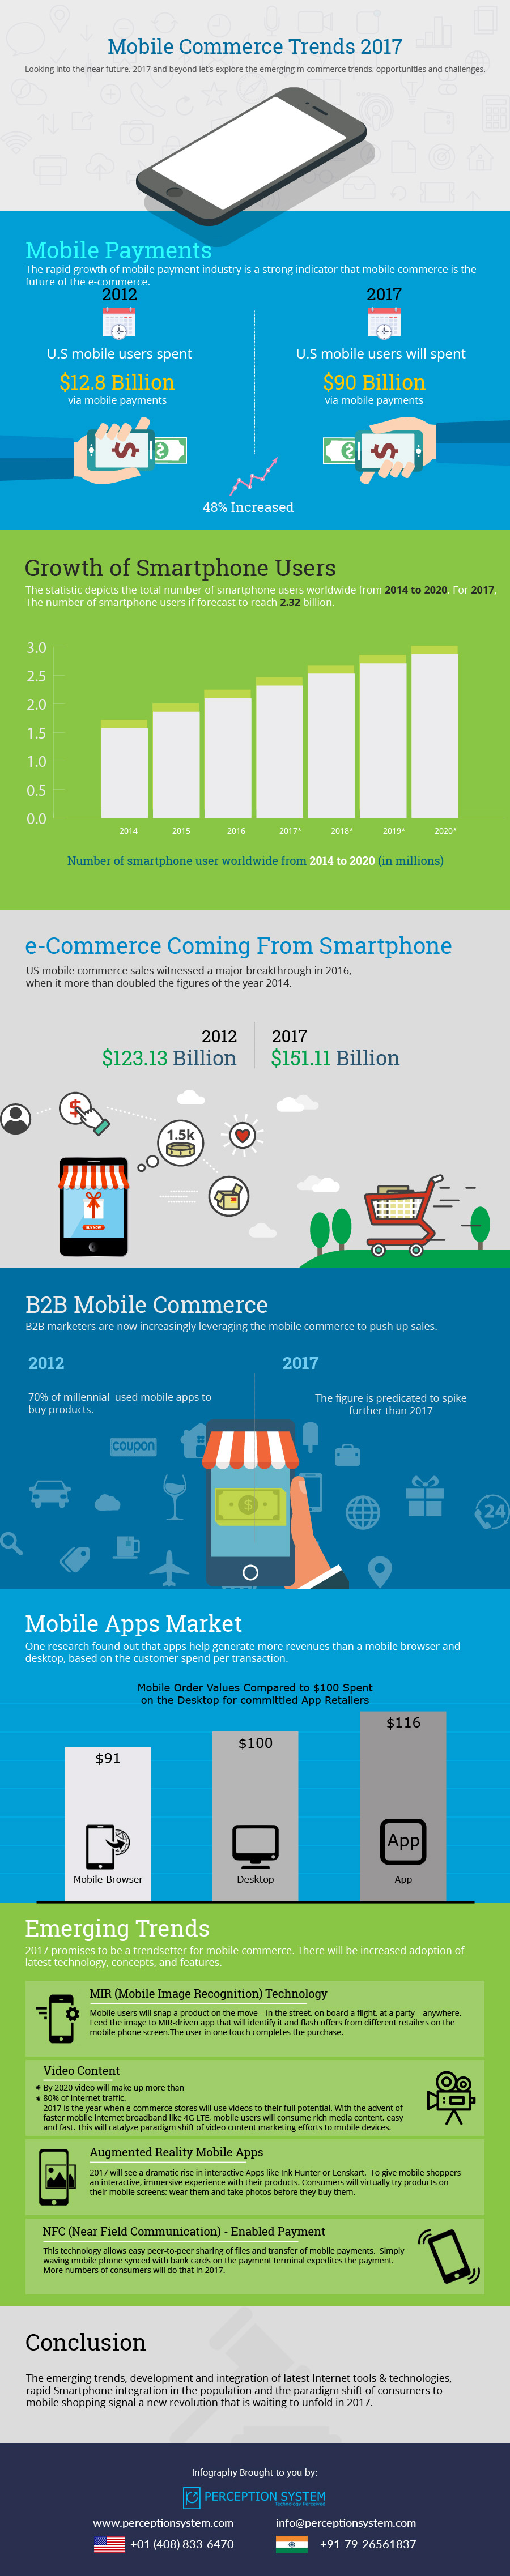 Mobile Commerce Trends 2017